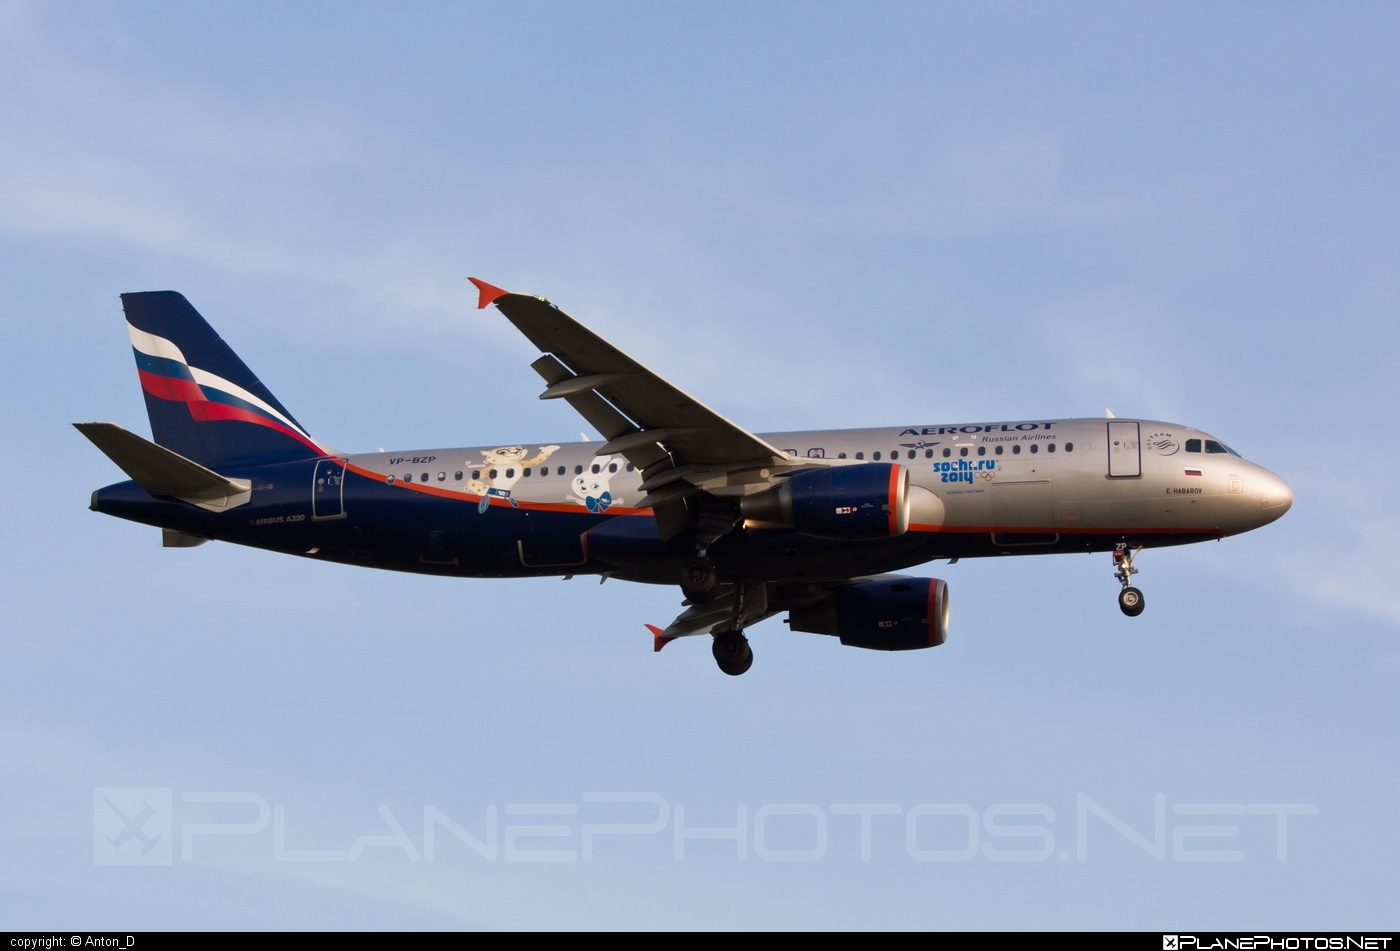 Airbus A320-214 - VP-BZP operated by Aeroflot #a320 #a320family #aeroflot #airbus #airbus320